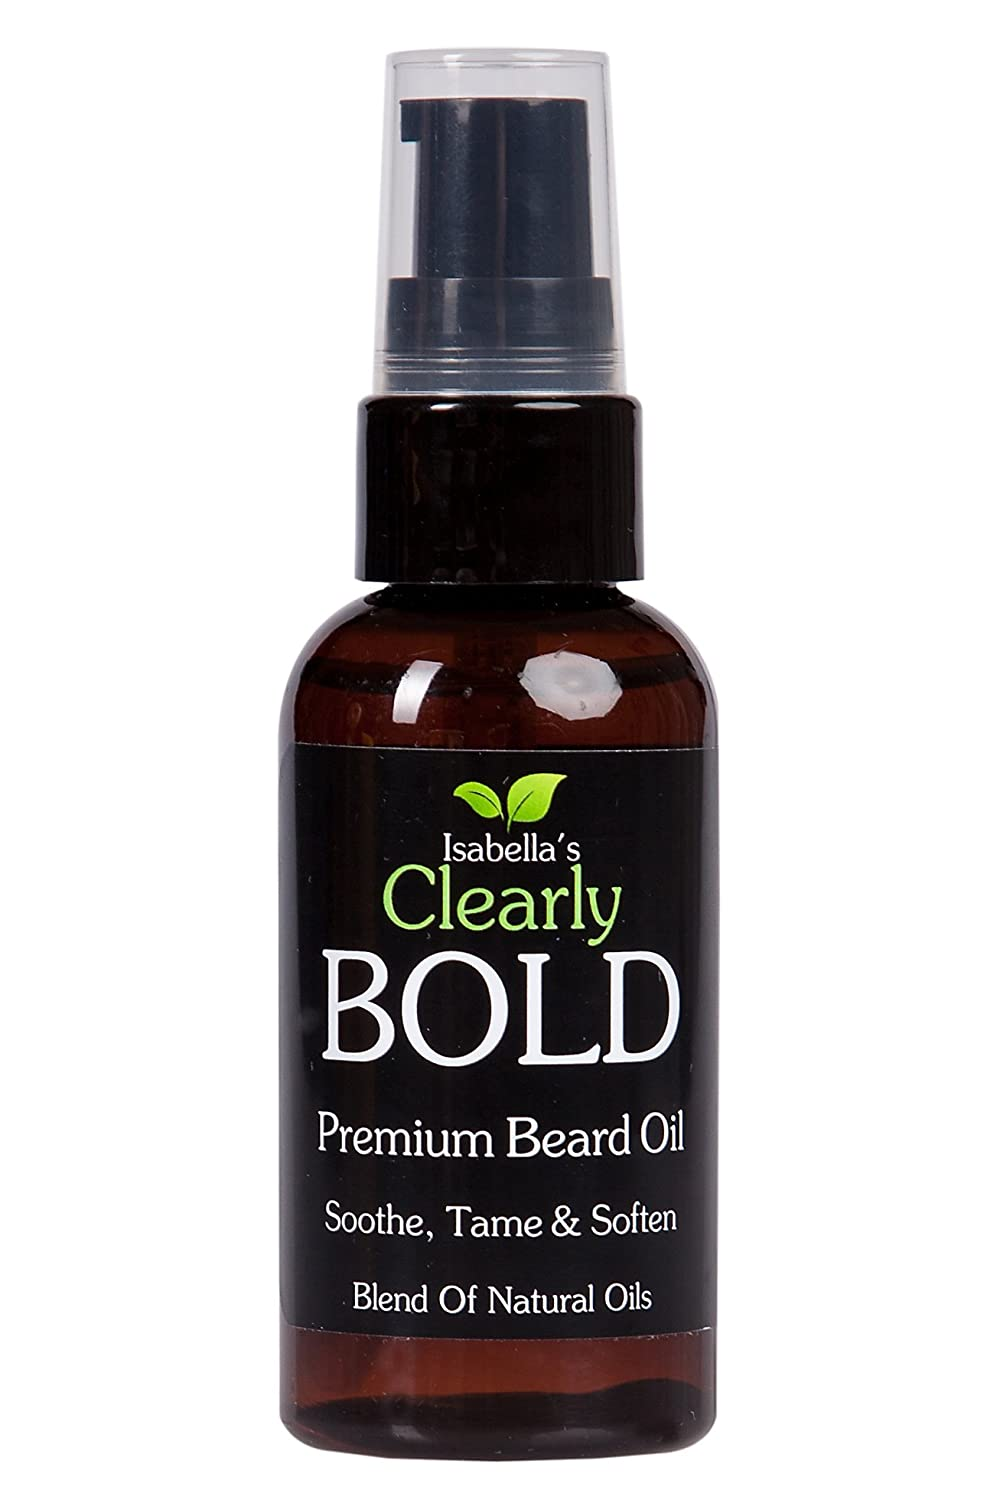 Isabella's Clearly BOLD, Premium Beard Oil and Conditioner. Natural Aromatic Essential Oils Moisturize, Tame, Hydrate, Prevent Itching for Healthy Hair Growth. Mustache, Face and Skin. Smell Great with Pine, Fir, Vanilla. 2 Oz Isabella' s Clearly BOLD